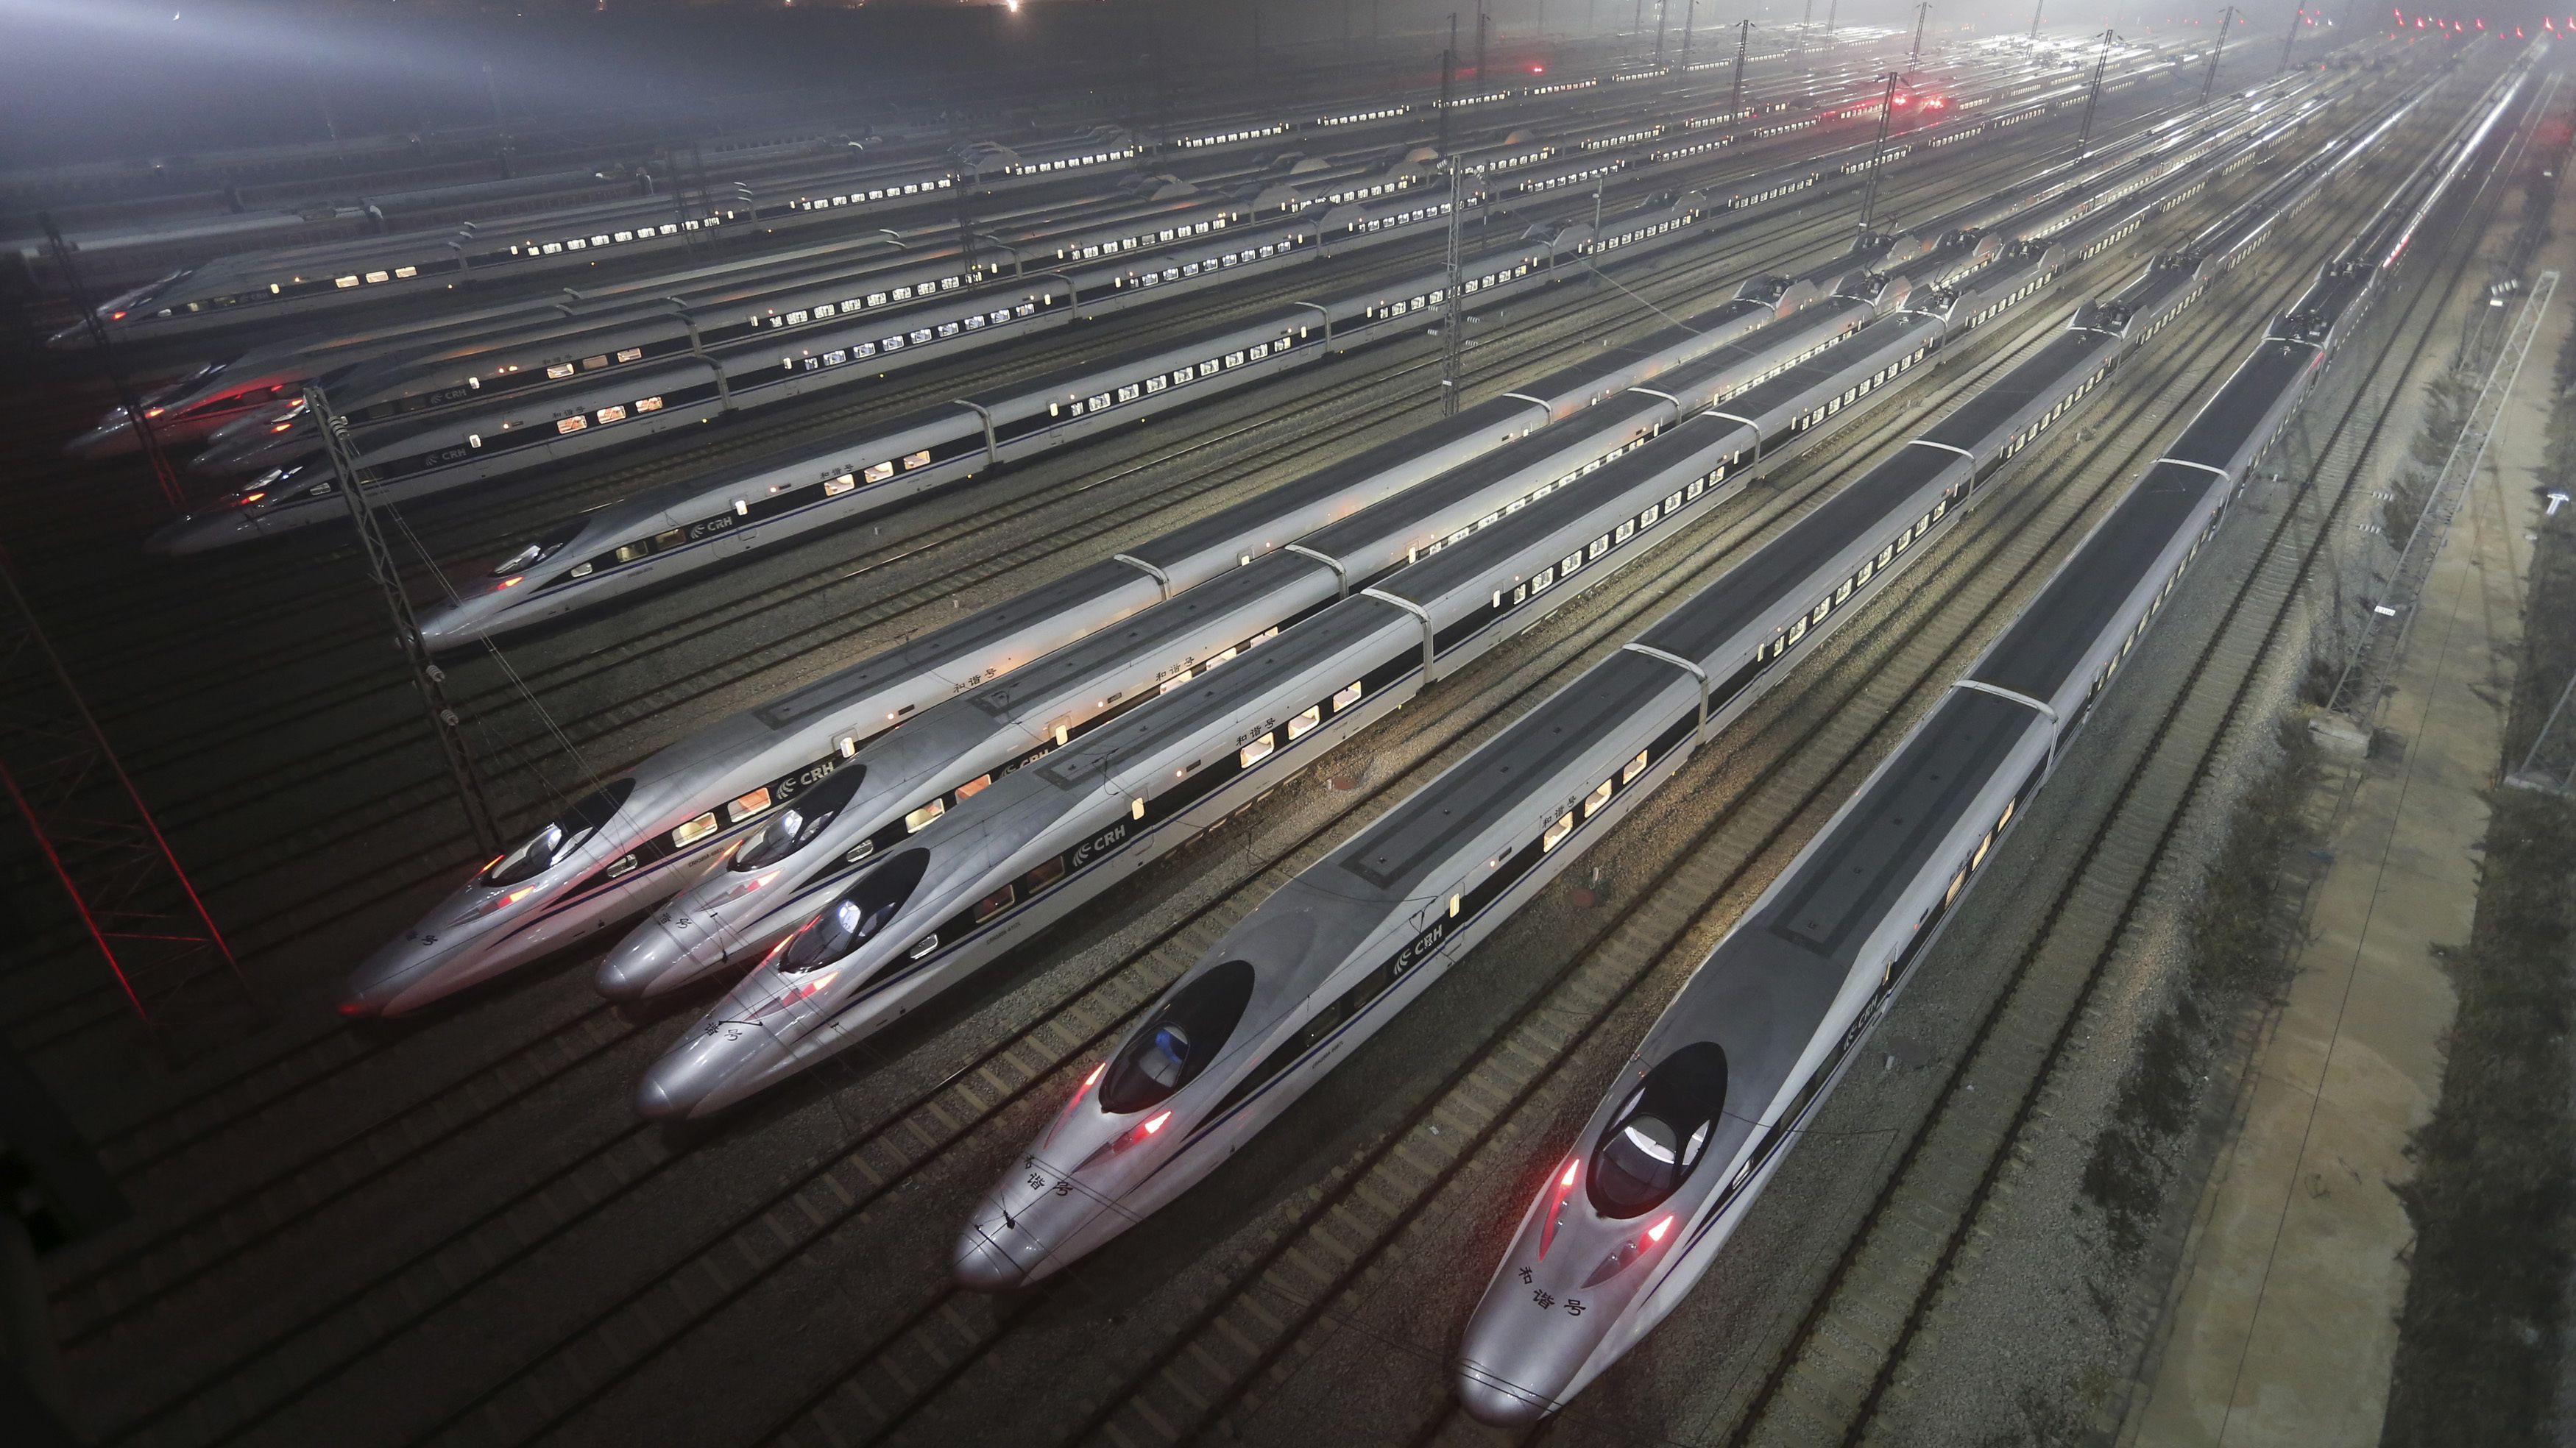 CRH380 (China Railway High-speed) Harmony bullet trains are seen at a high-speed train maintenance base in Wuhan, Hubei province, early December 25, 2012. China will open the world's longest high-speed rail line this week when a link between Beijing and the southern metropolis of Guangzhou is inaugurated, officials said on Saturday, underscoring its commitment to a trouble-plagued transport scheme. Rail investment slowed sharply in the wake of that accident and state media reported earlier this year that the government had cut planned railway investment by 500 billion yuan ($80.27 billion) to 2.3 trillion yuan under a five-year plan to 2015. REUTERS/Stringer (CHINA - Tags: TRANSPORT SOCIETY BUSINESS TPX IMAGES OF THE DAY) CHINA OUT. NO COMMERCIAL OR EDITORIAL SALES IN CHINA - RTR3BVZM